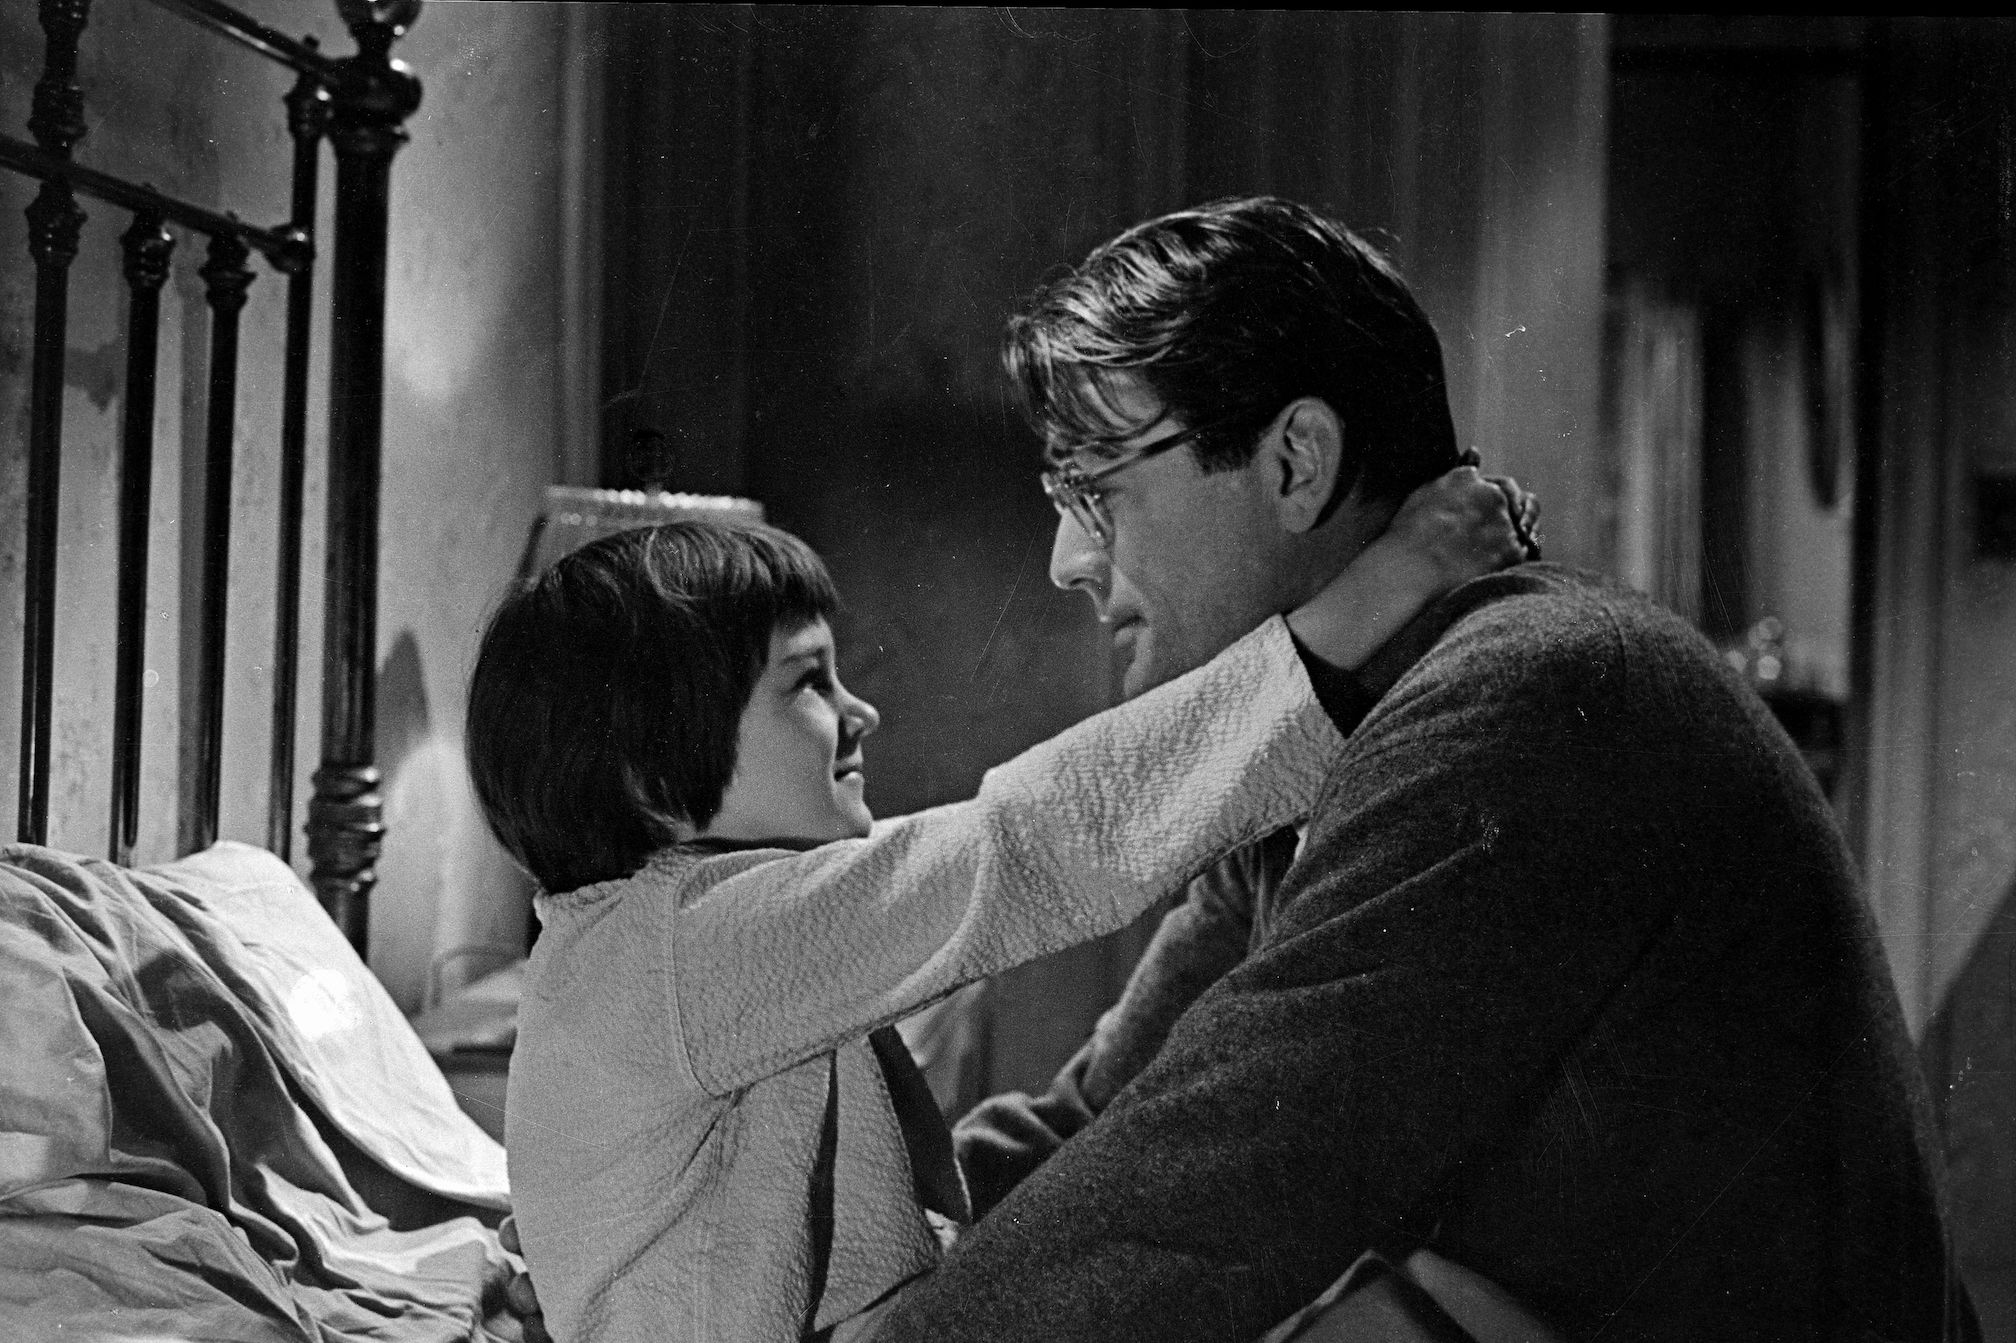 Mary Badham Shares Behind the Scenes Stories from Her Iconic Role in <i>To Kill a Mockingbird</i>